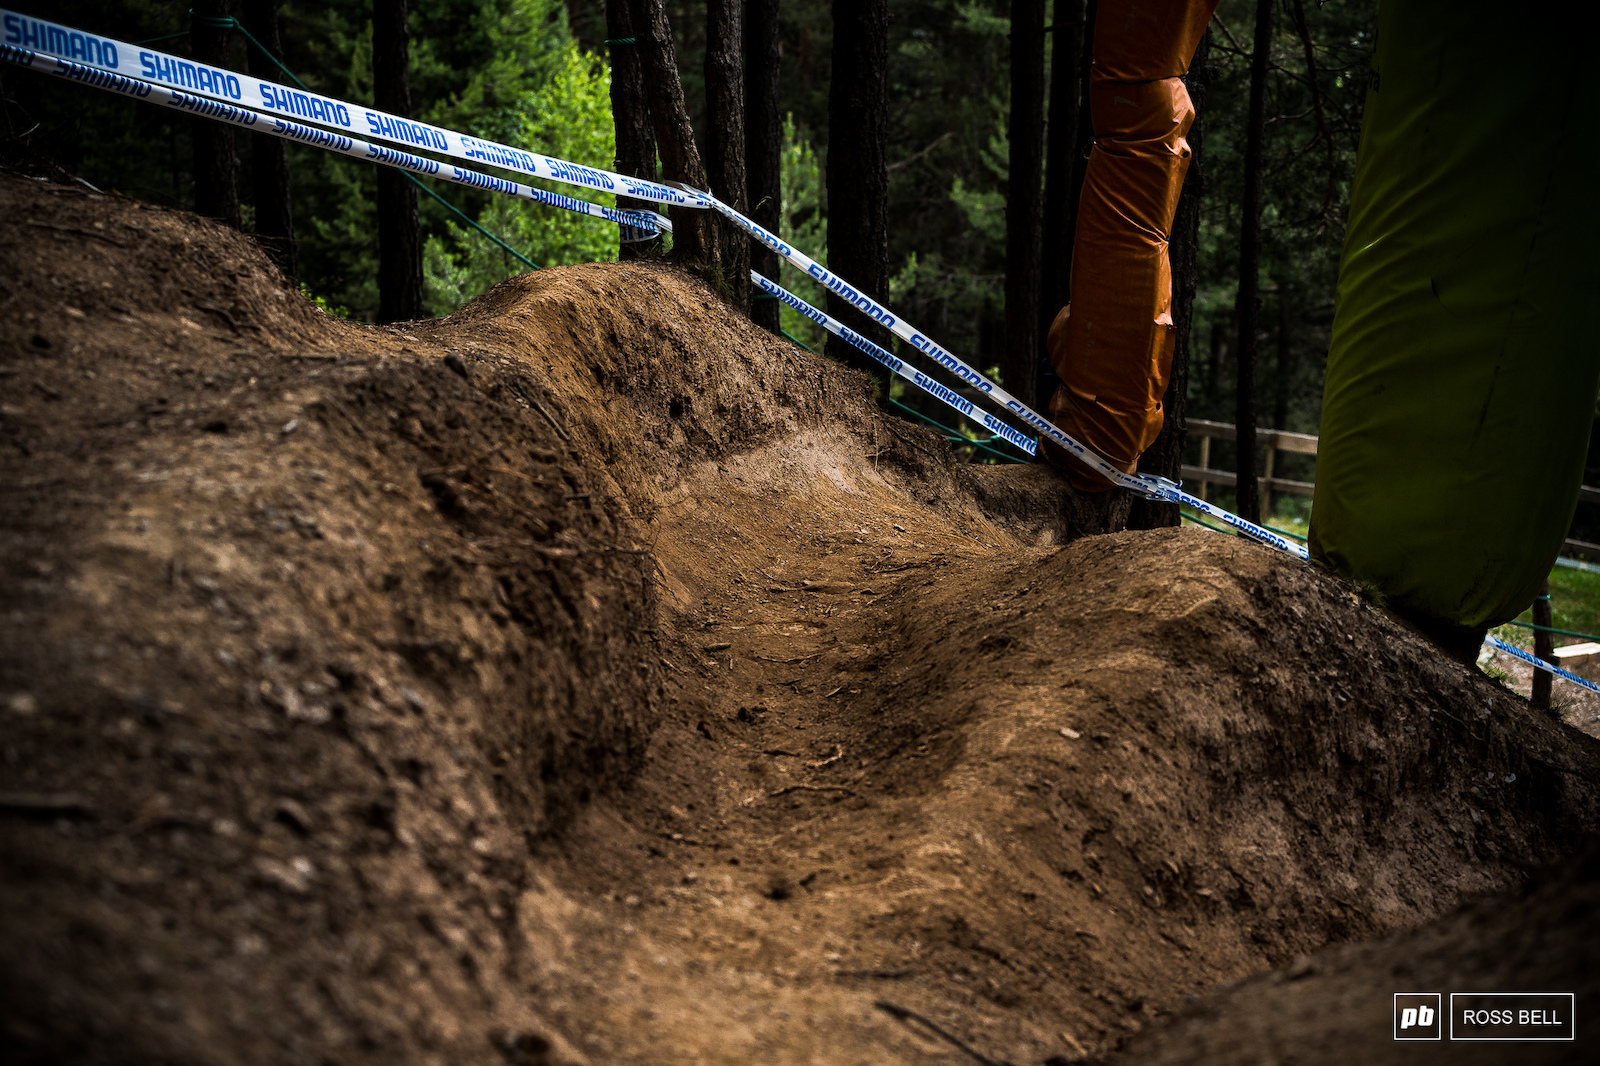 The ruts get deeper here every year.